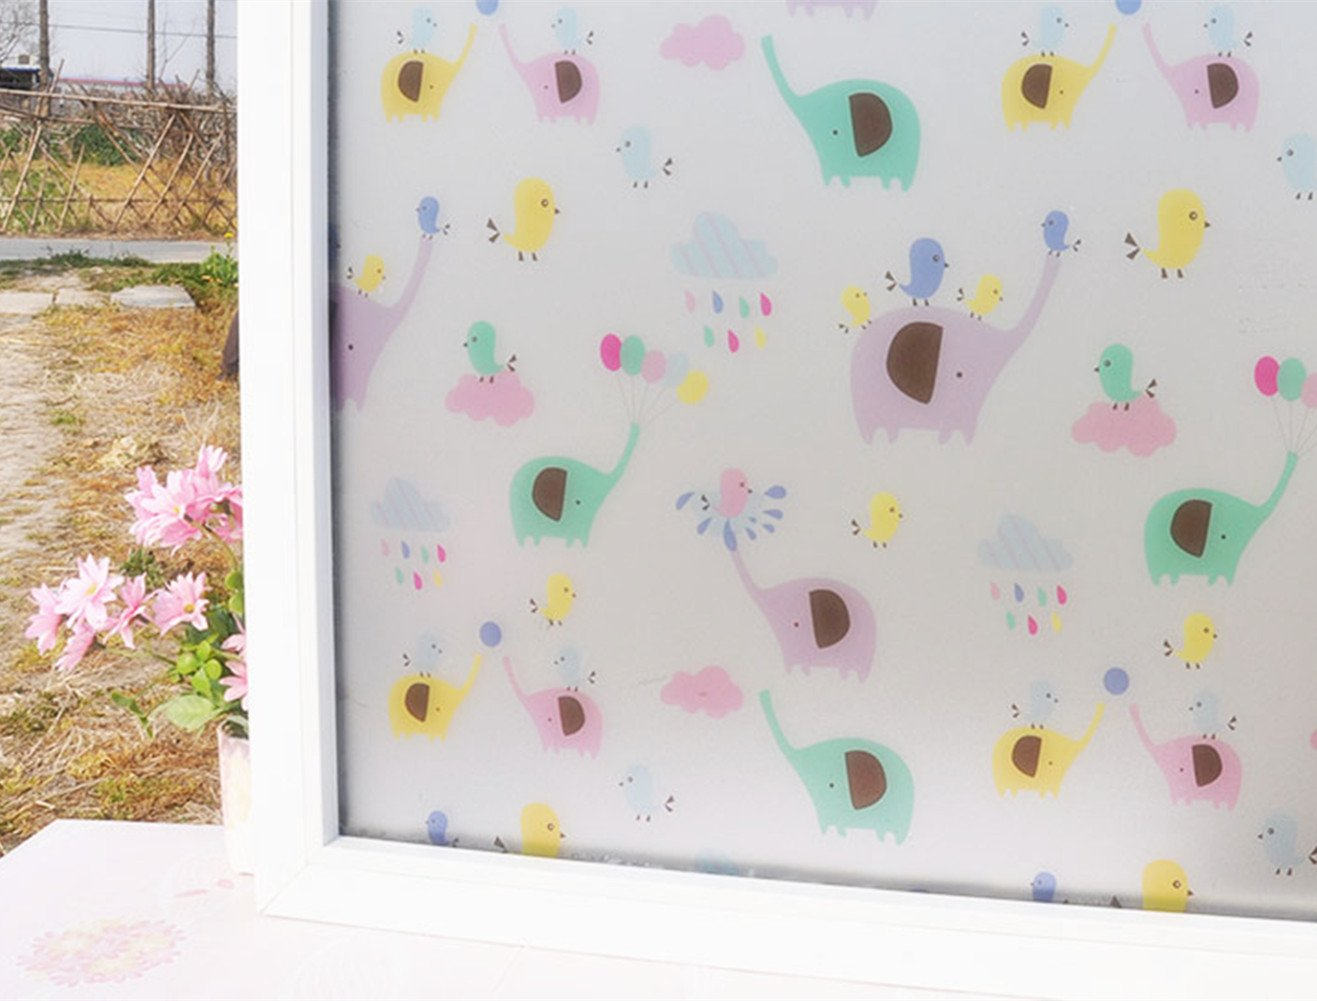 Amao Cute Elephant Frosted No Glue Static Cling Window Film Glass Privacy Film for Kids Room Bathroom 17.7 by 78.7 inches